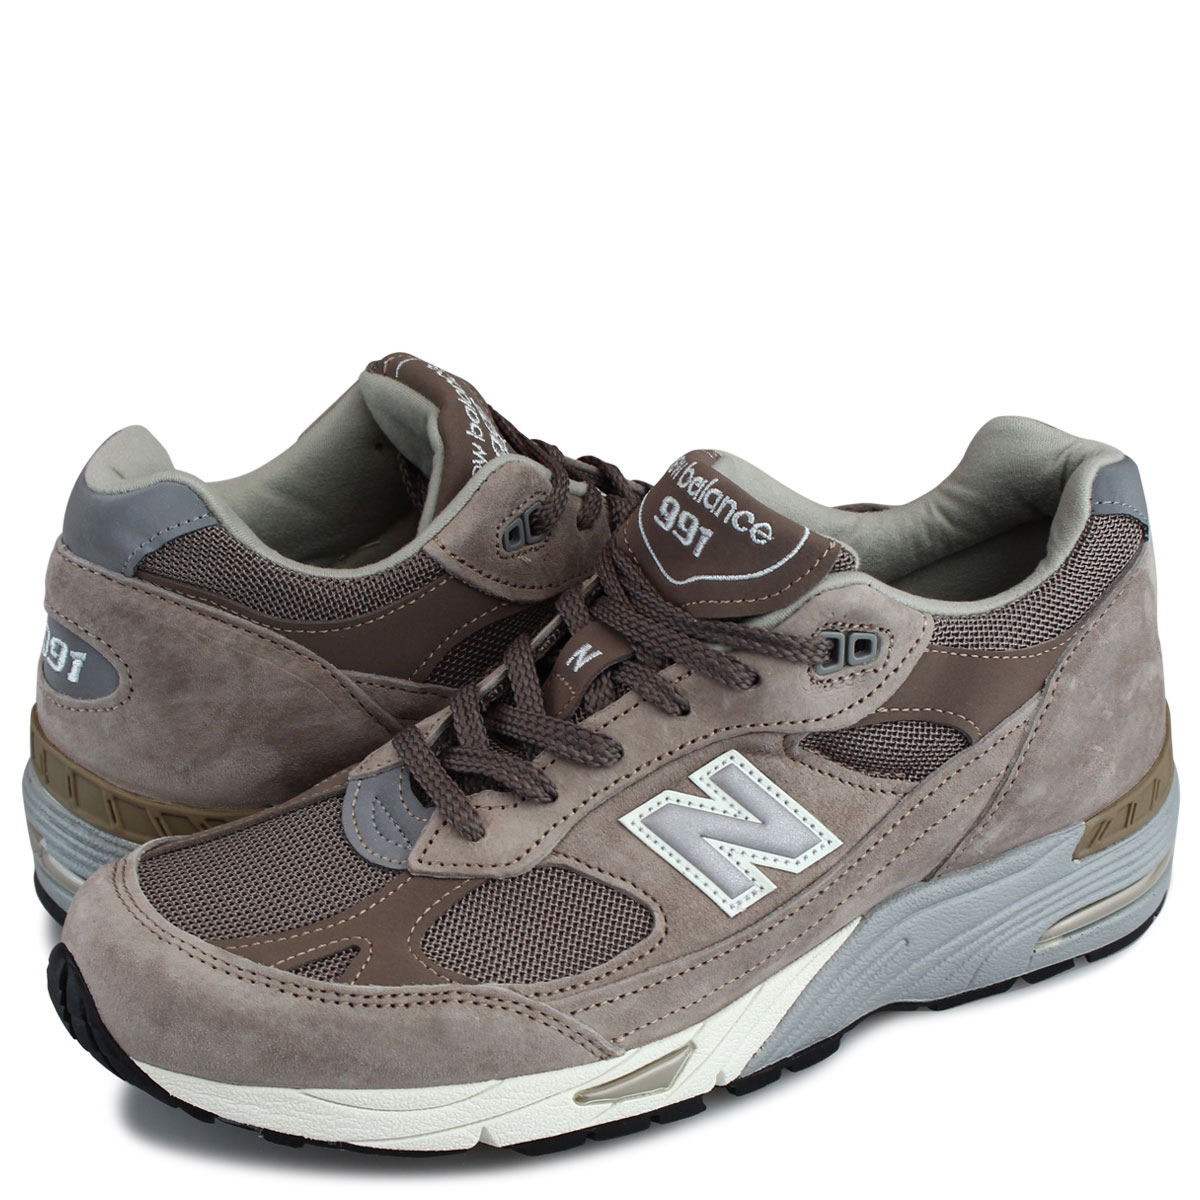 535587a3259 Whats up Sports: new balance M991EFS New Balance 991 men's sneakers D Wise  MADE IN UK shoes brown | Rakuten Global Market